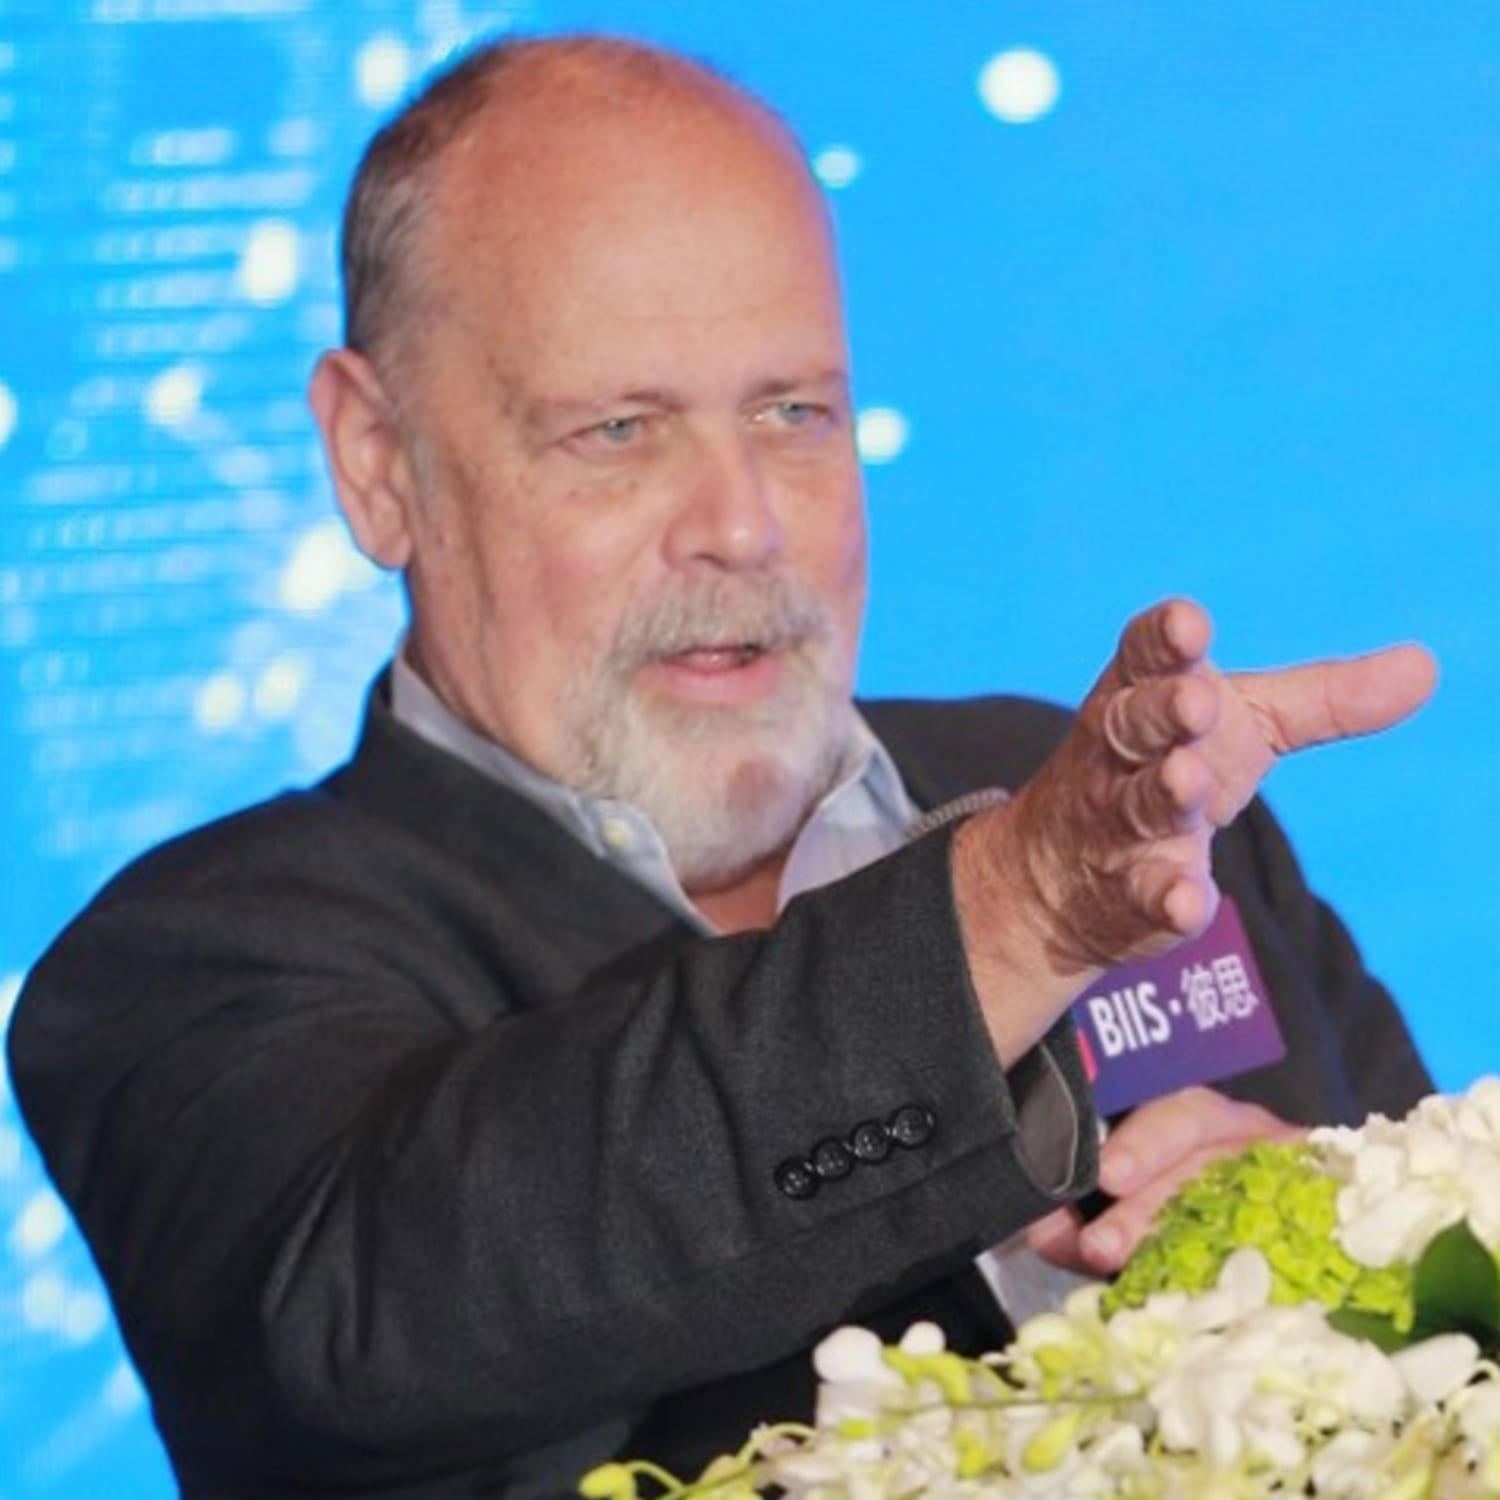 John Carroll at the US-China Biopharma Innovation and Investment Summit in Shanghai on October 23, 2018; Credit: Endpoints News, PharmCube